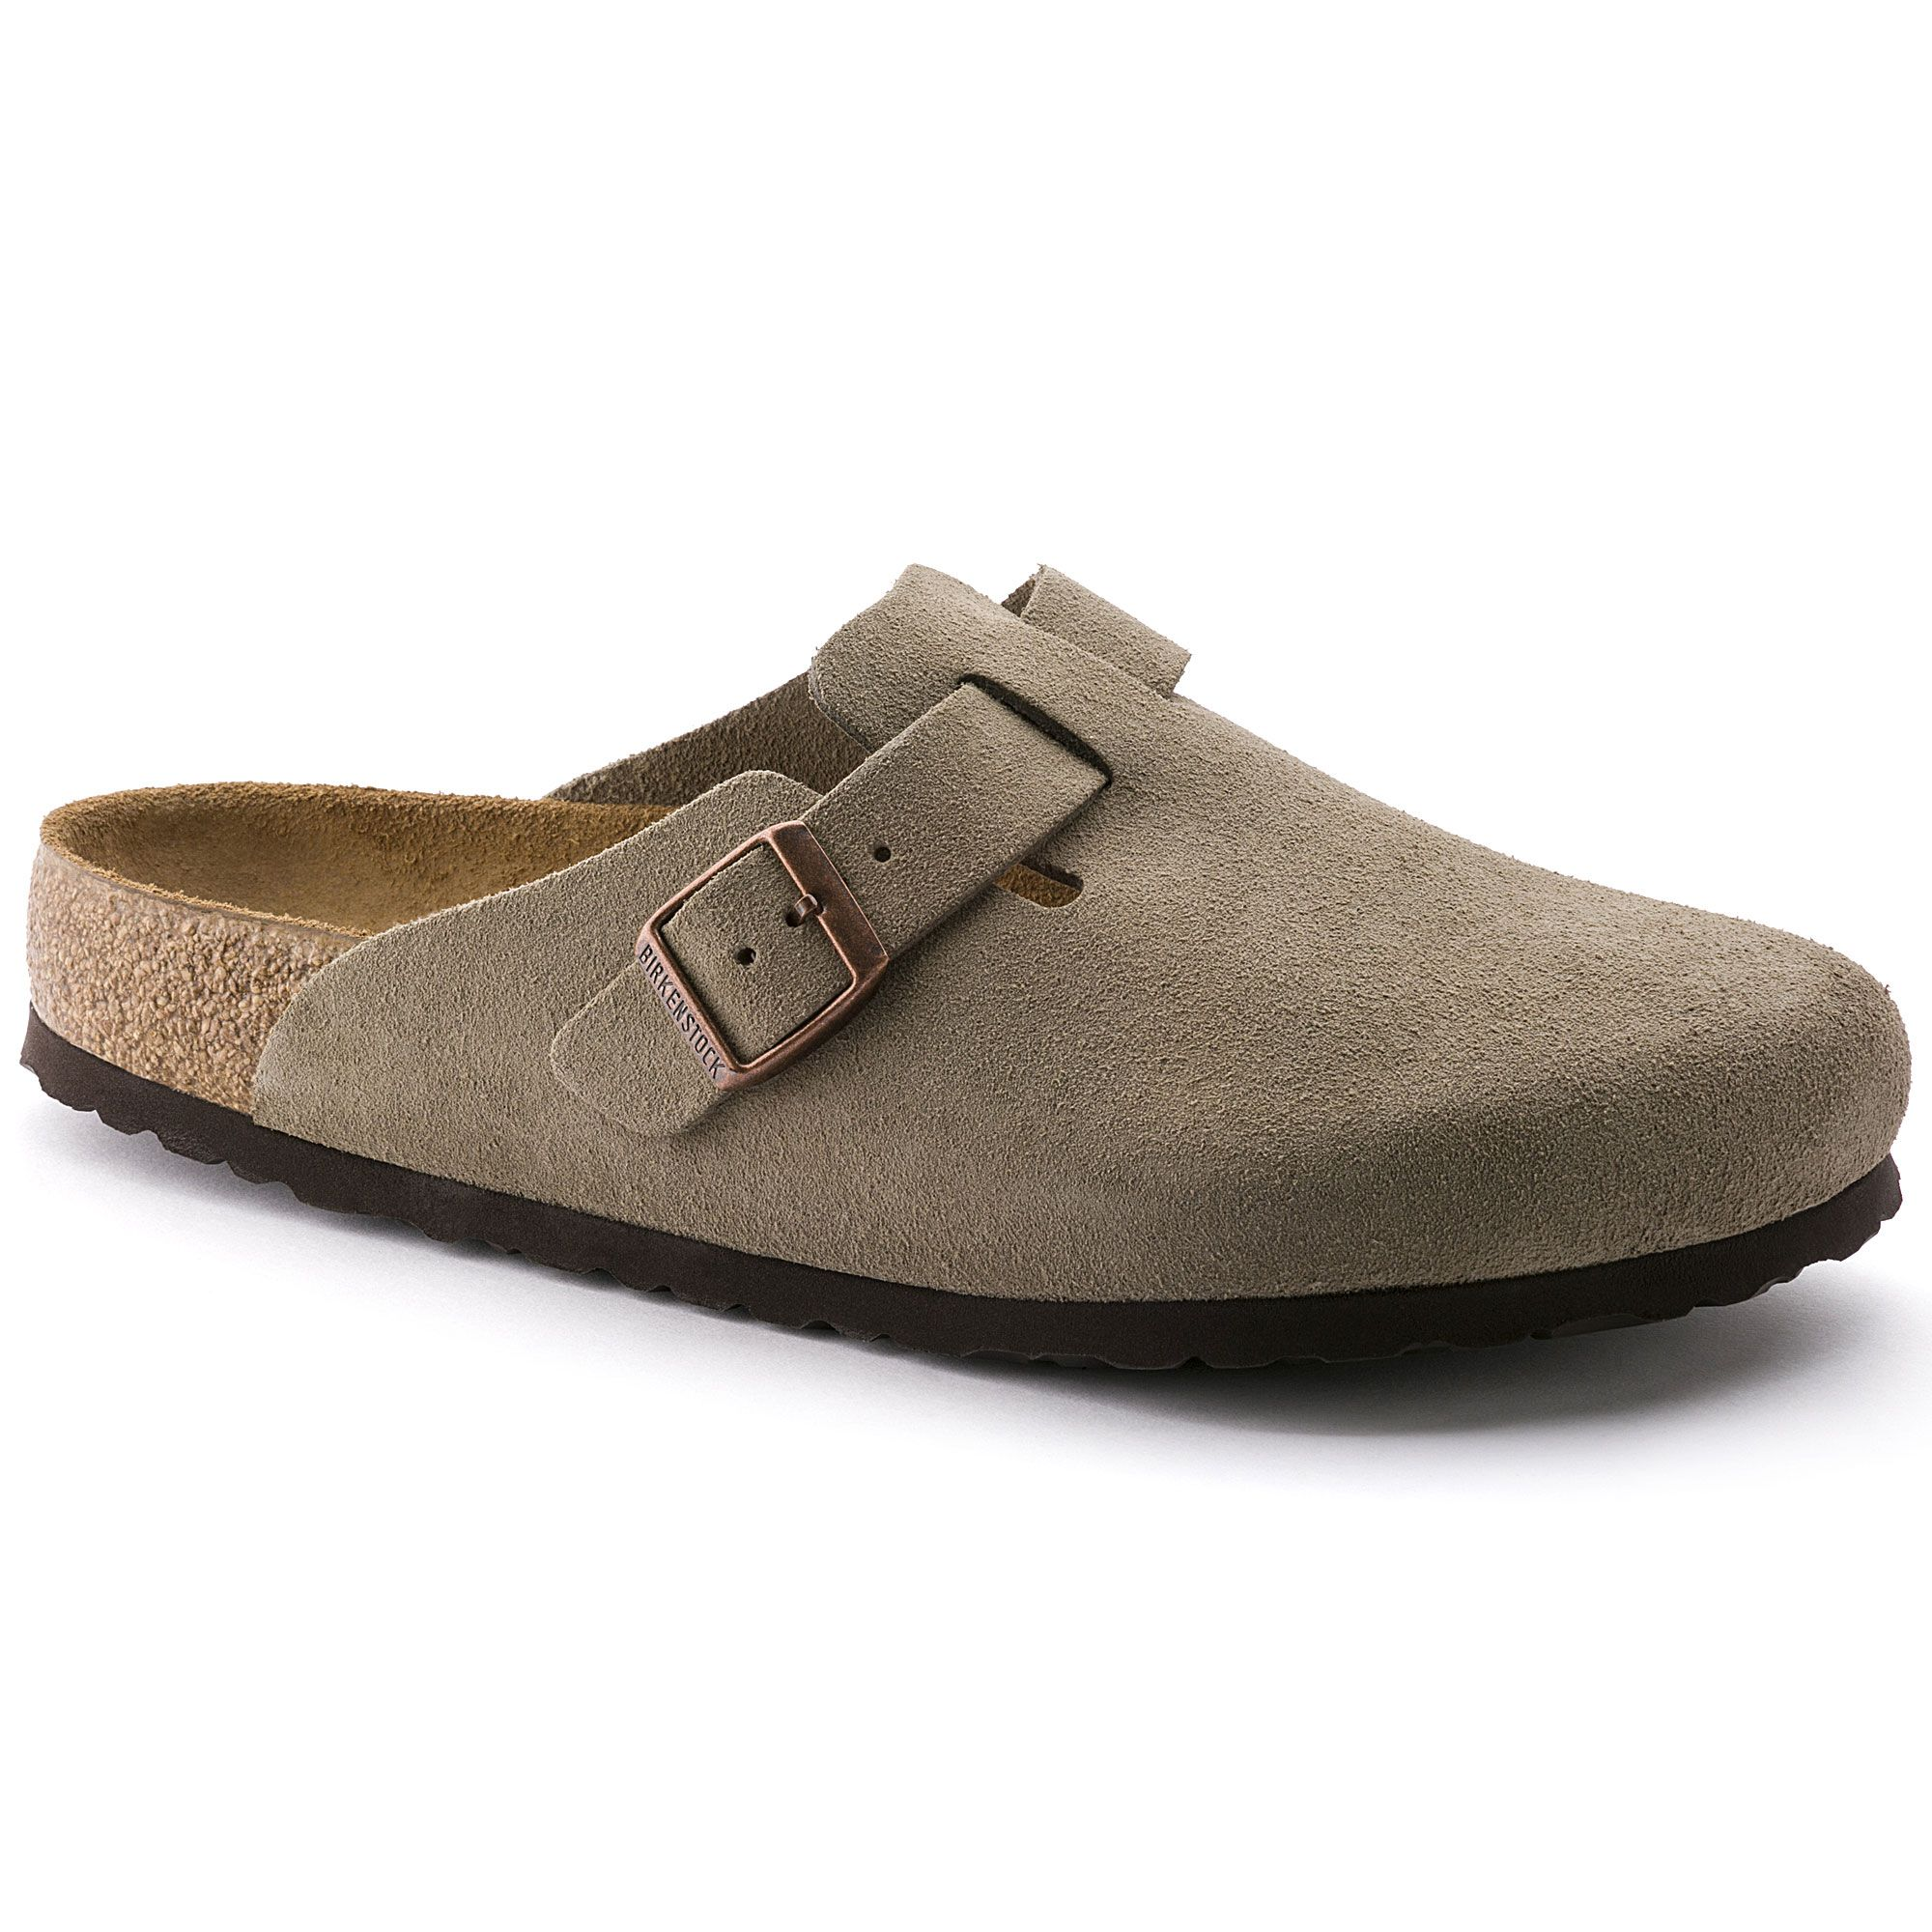 07707e085c98 Boston Suede Leather Soft Footbed Mocha